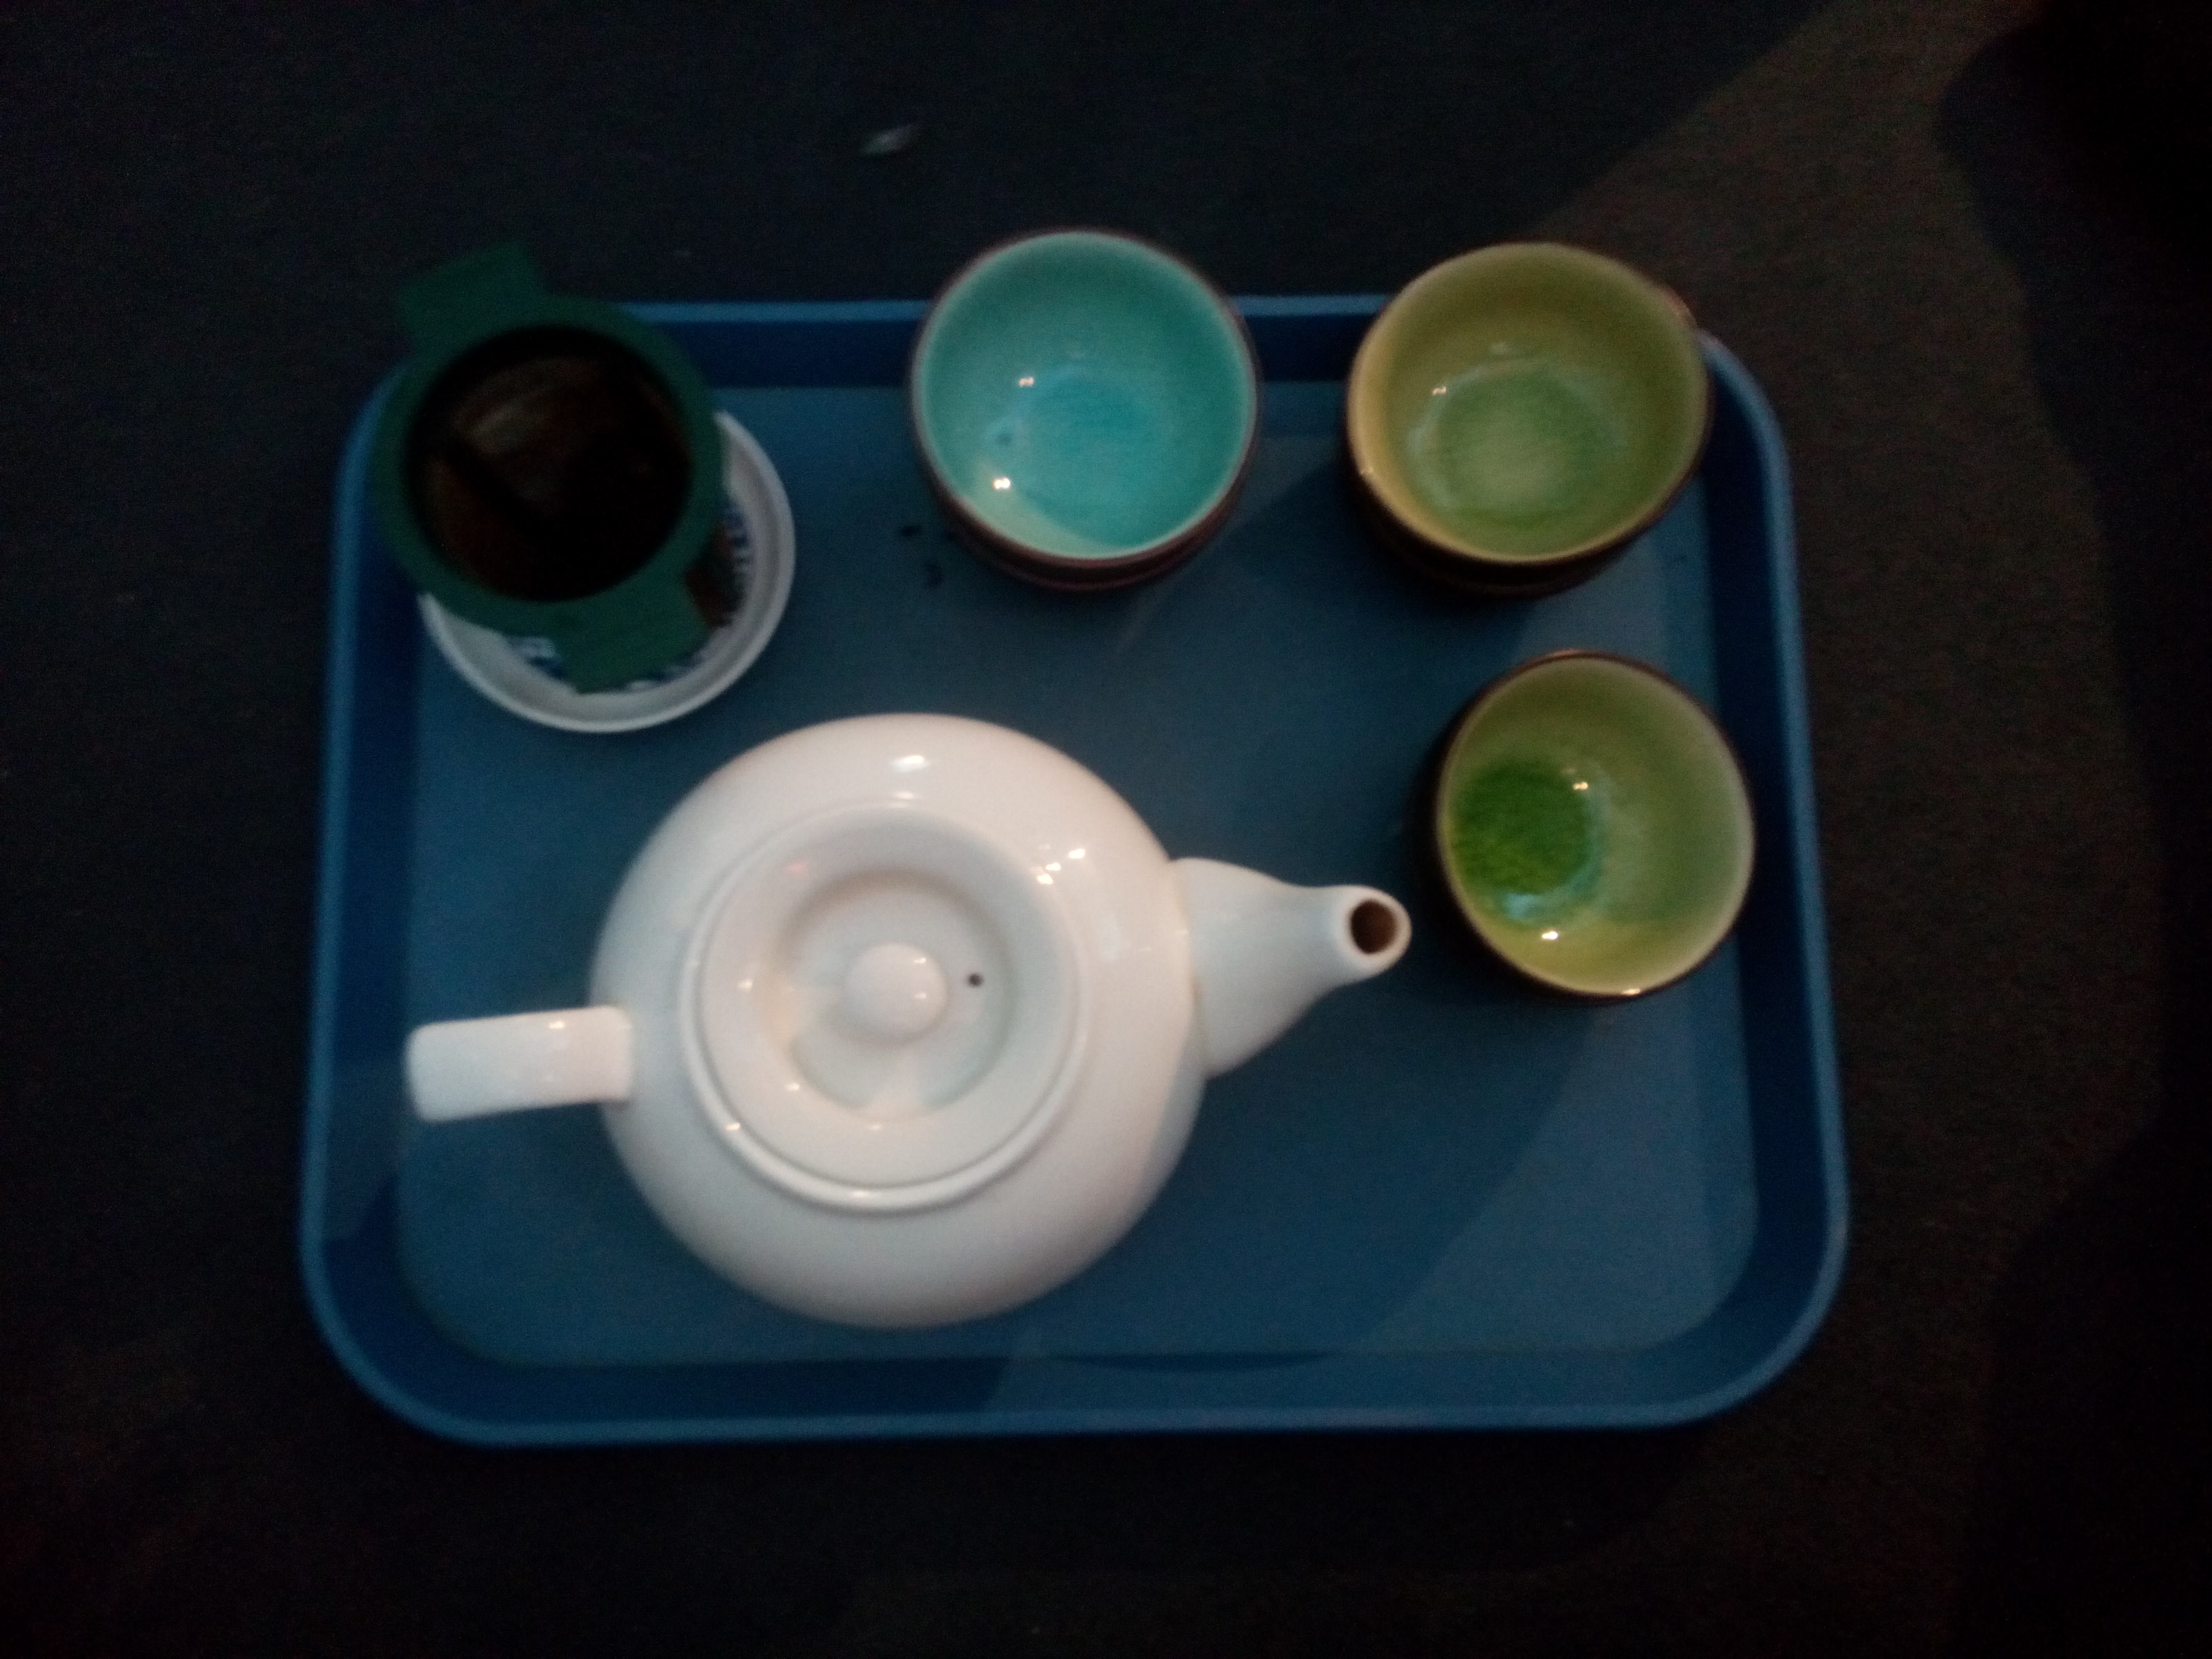 A blue tray with a white teapot, strainer, and three green/blue cups, from above